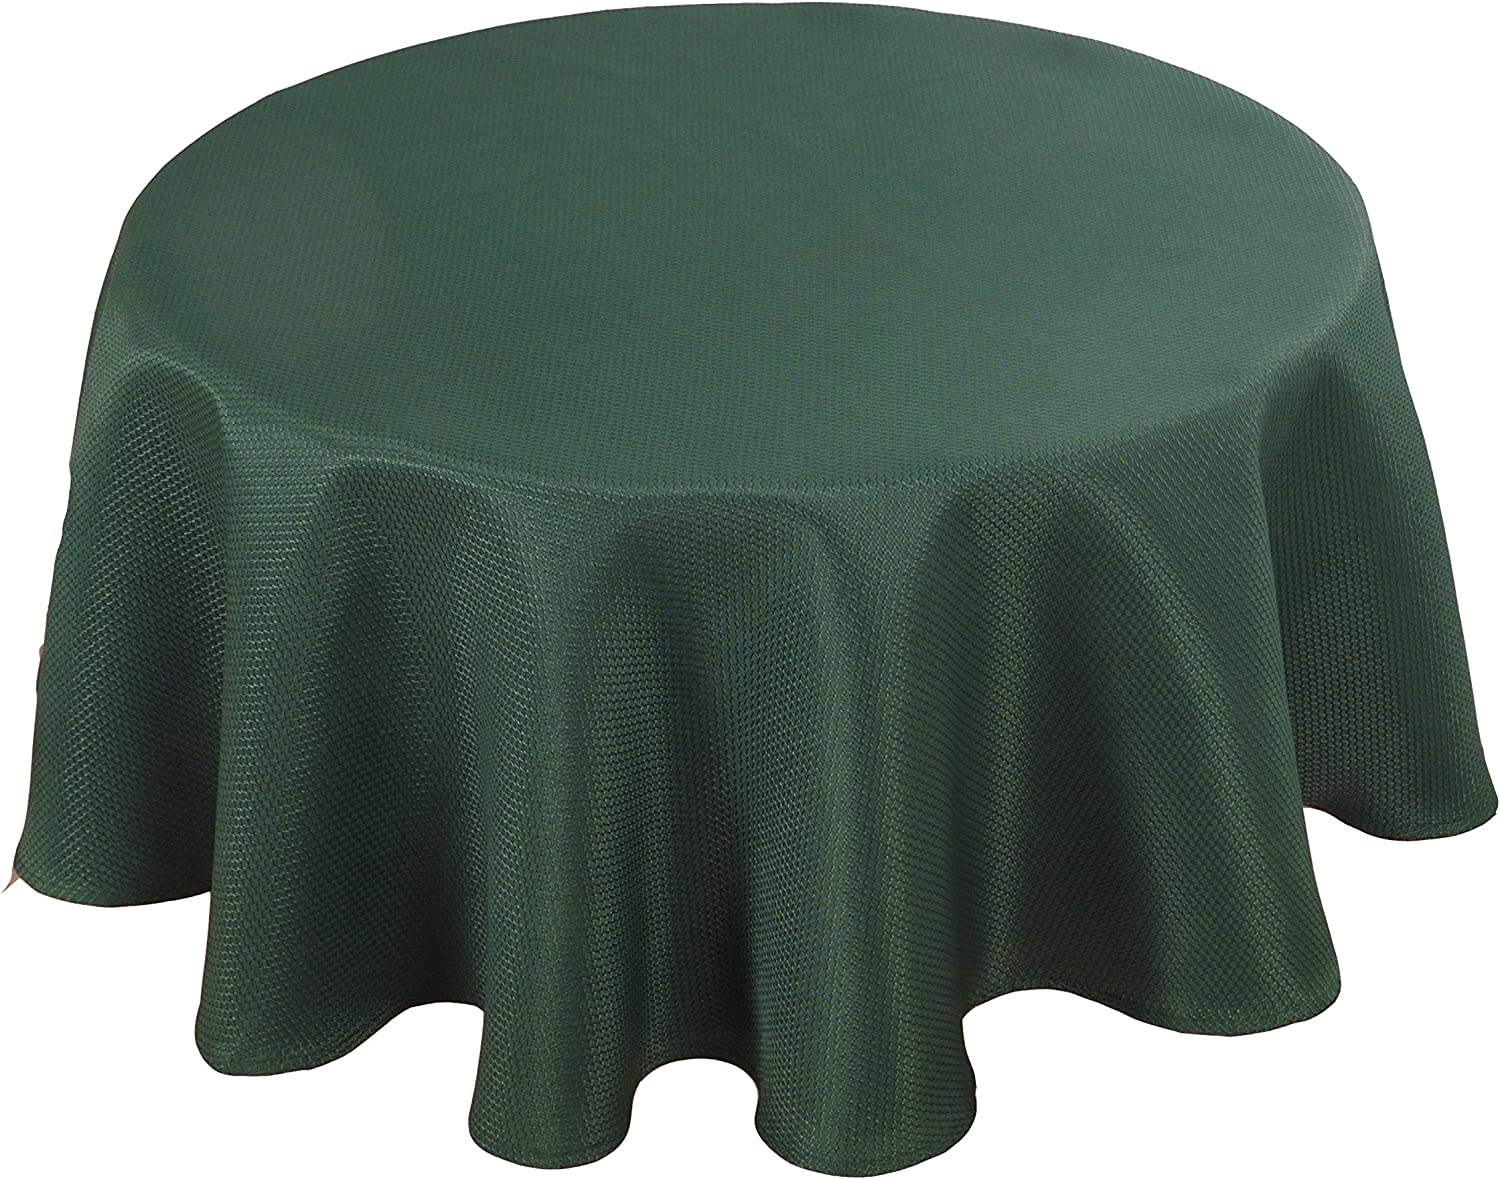 Biscaynebay Textured Fabric Table Cloth, Water Resistant Spill Proof Washable Tablecloths for Dining, Kitchen, Wedding and Parties, Hunter Green 60 Inches Round